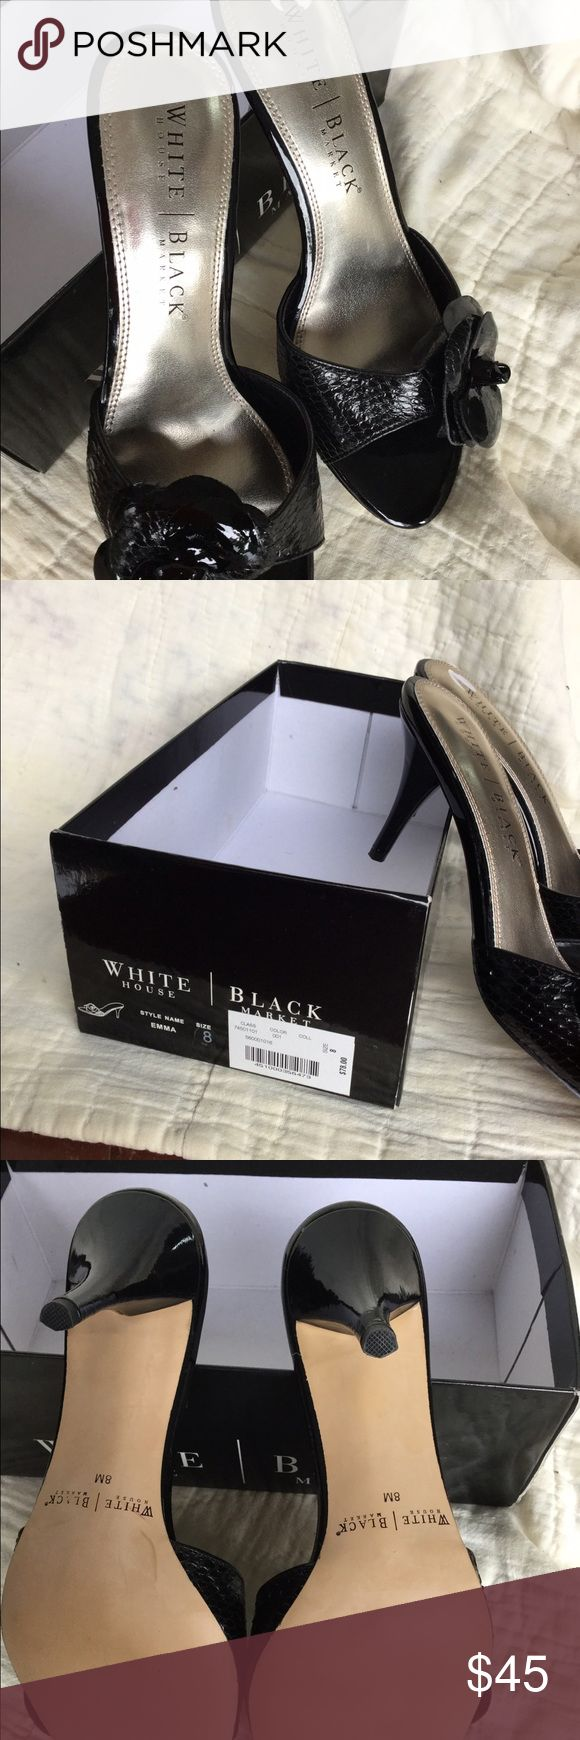 Black Patent Leather Snake Kitten Heel Mule Sandal Black patent snake embossed leather kitten heel mules with patent rose detail. Very sexy on! Size 8M.  Never worn, therefore in new condition.  Paid $78.00 at White House Black Market. White House Black Market Shoes Sandals